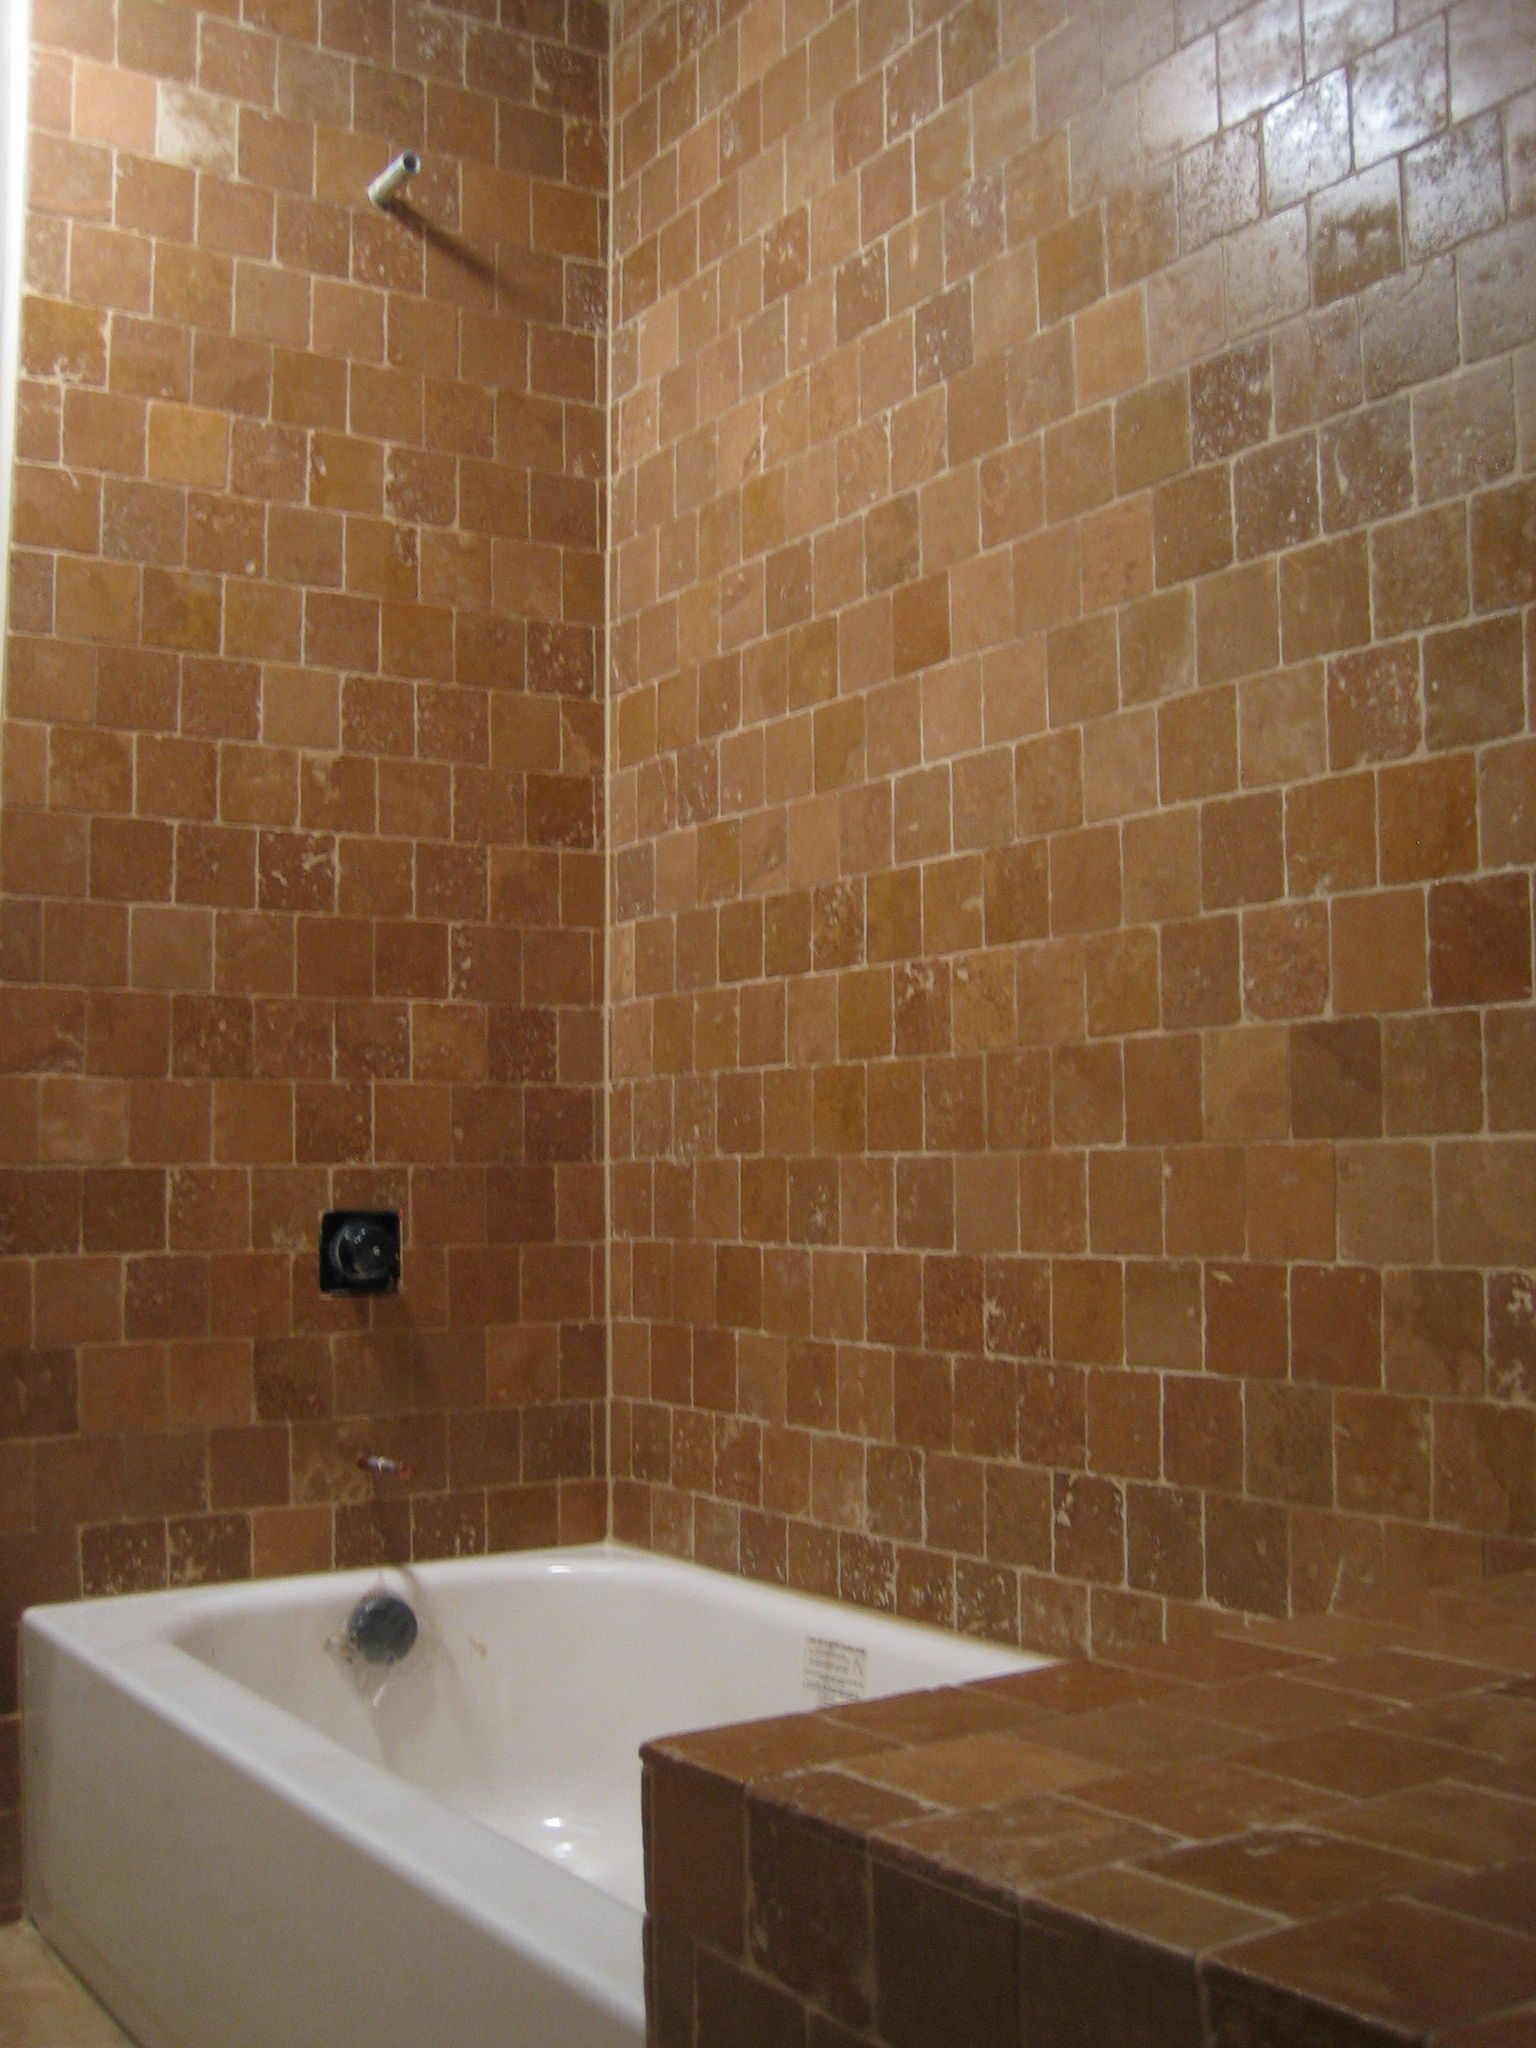 Tiled Tub Surround Pictures | Bathtub Surrounds Ma Bathtub Tile Surrounds »